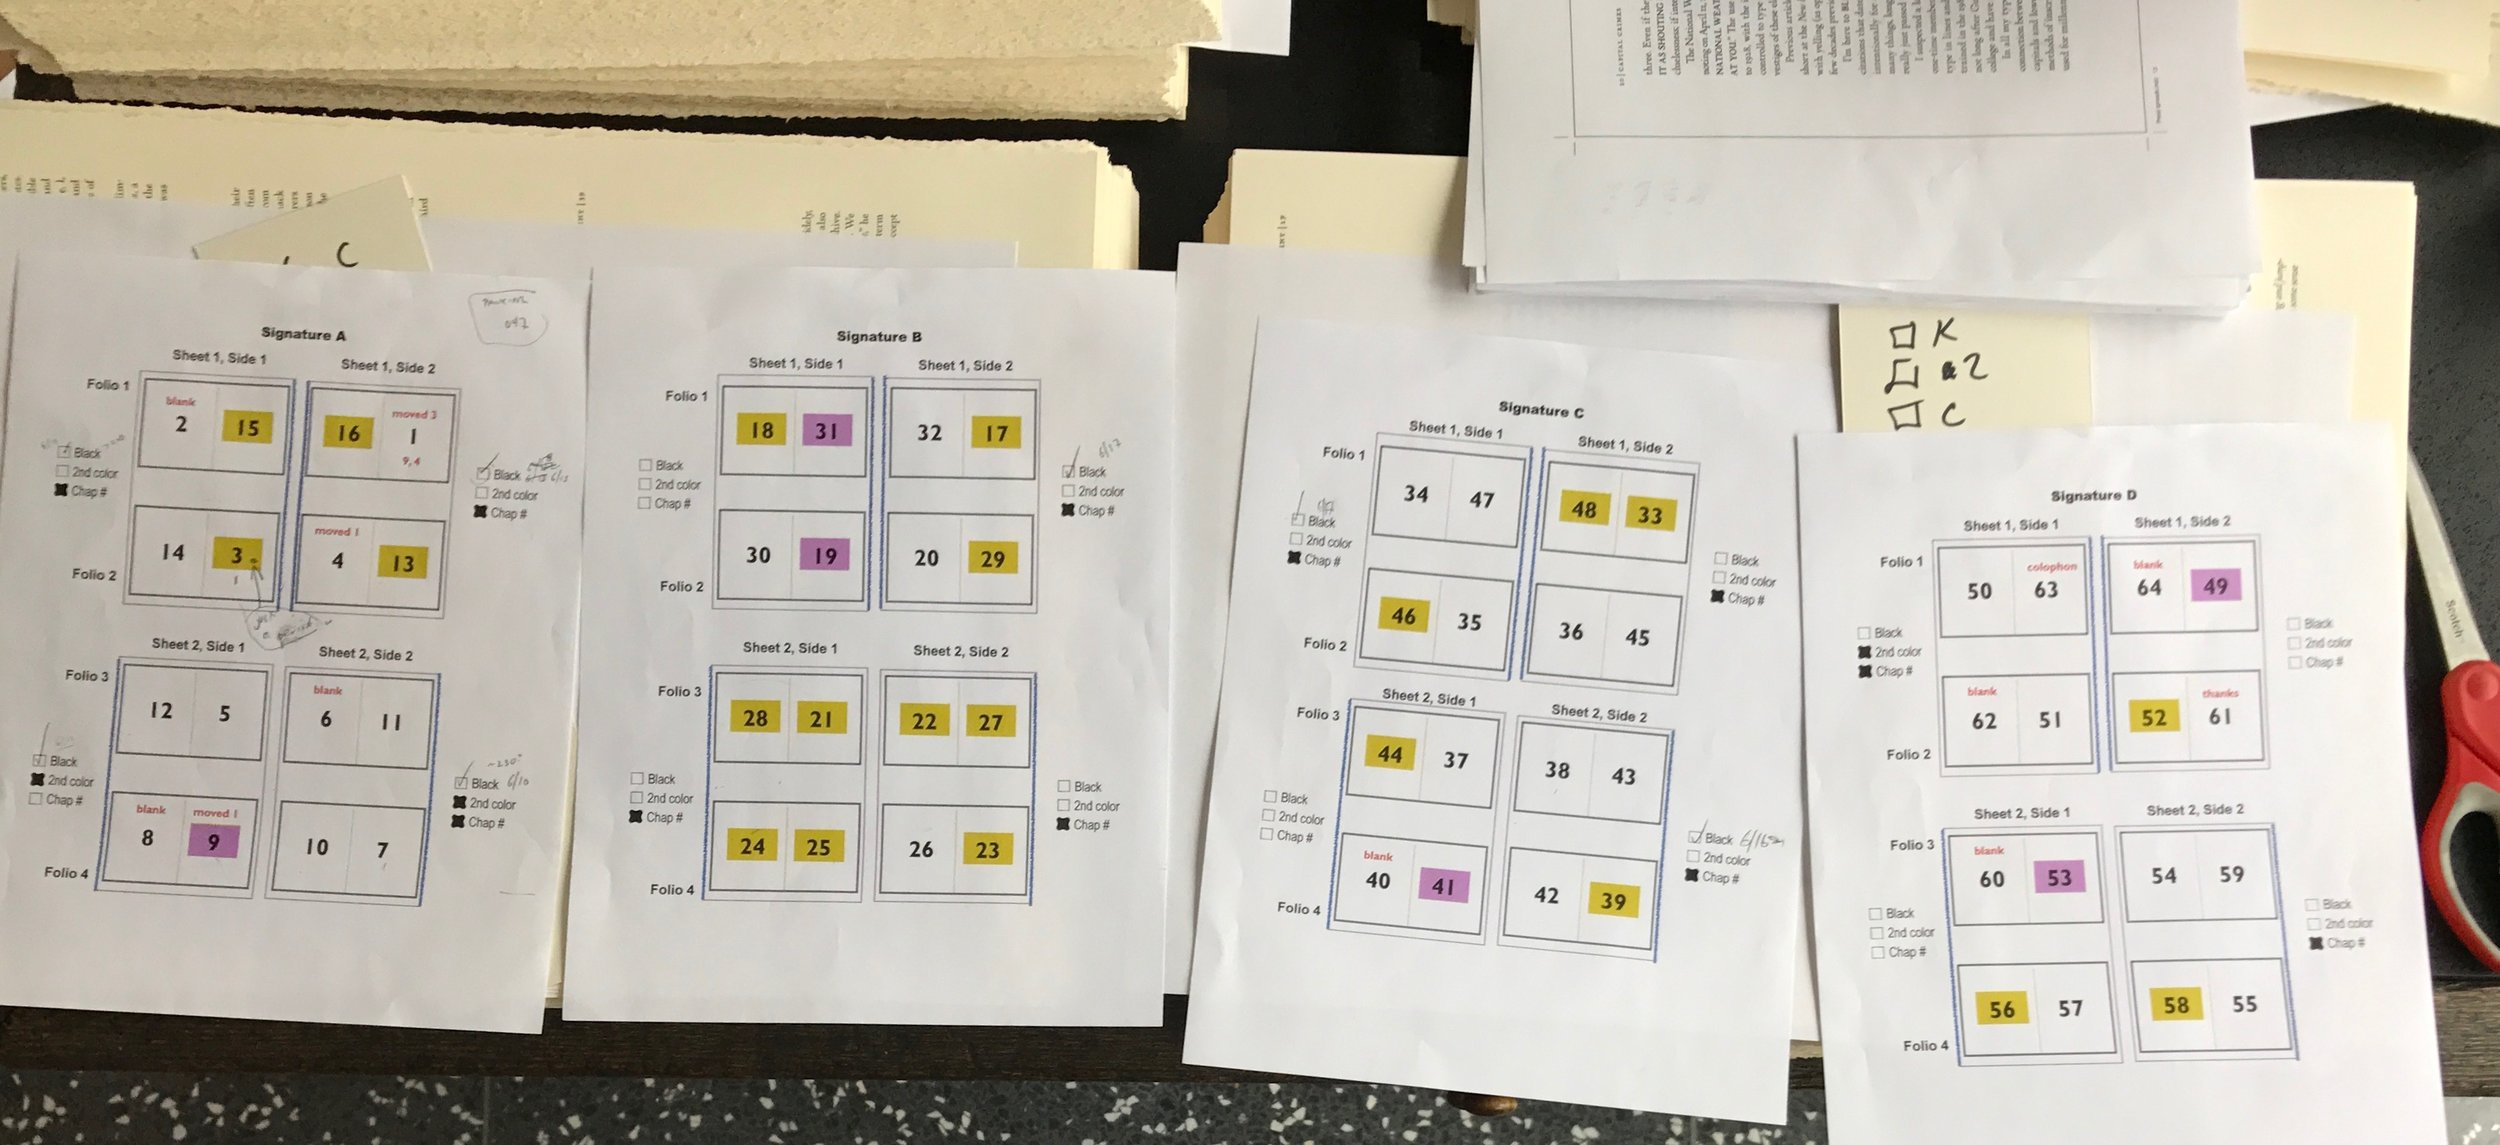 My print-planning guides. They show press sheets, folios, pages, and signatures (8 sheets, 16 folios, 4 signatures, 64 finished pages), and which colors appear on which pages, and which passes are done. The gold is the second color; purple, chapter numbers.